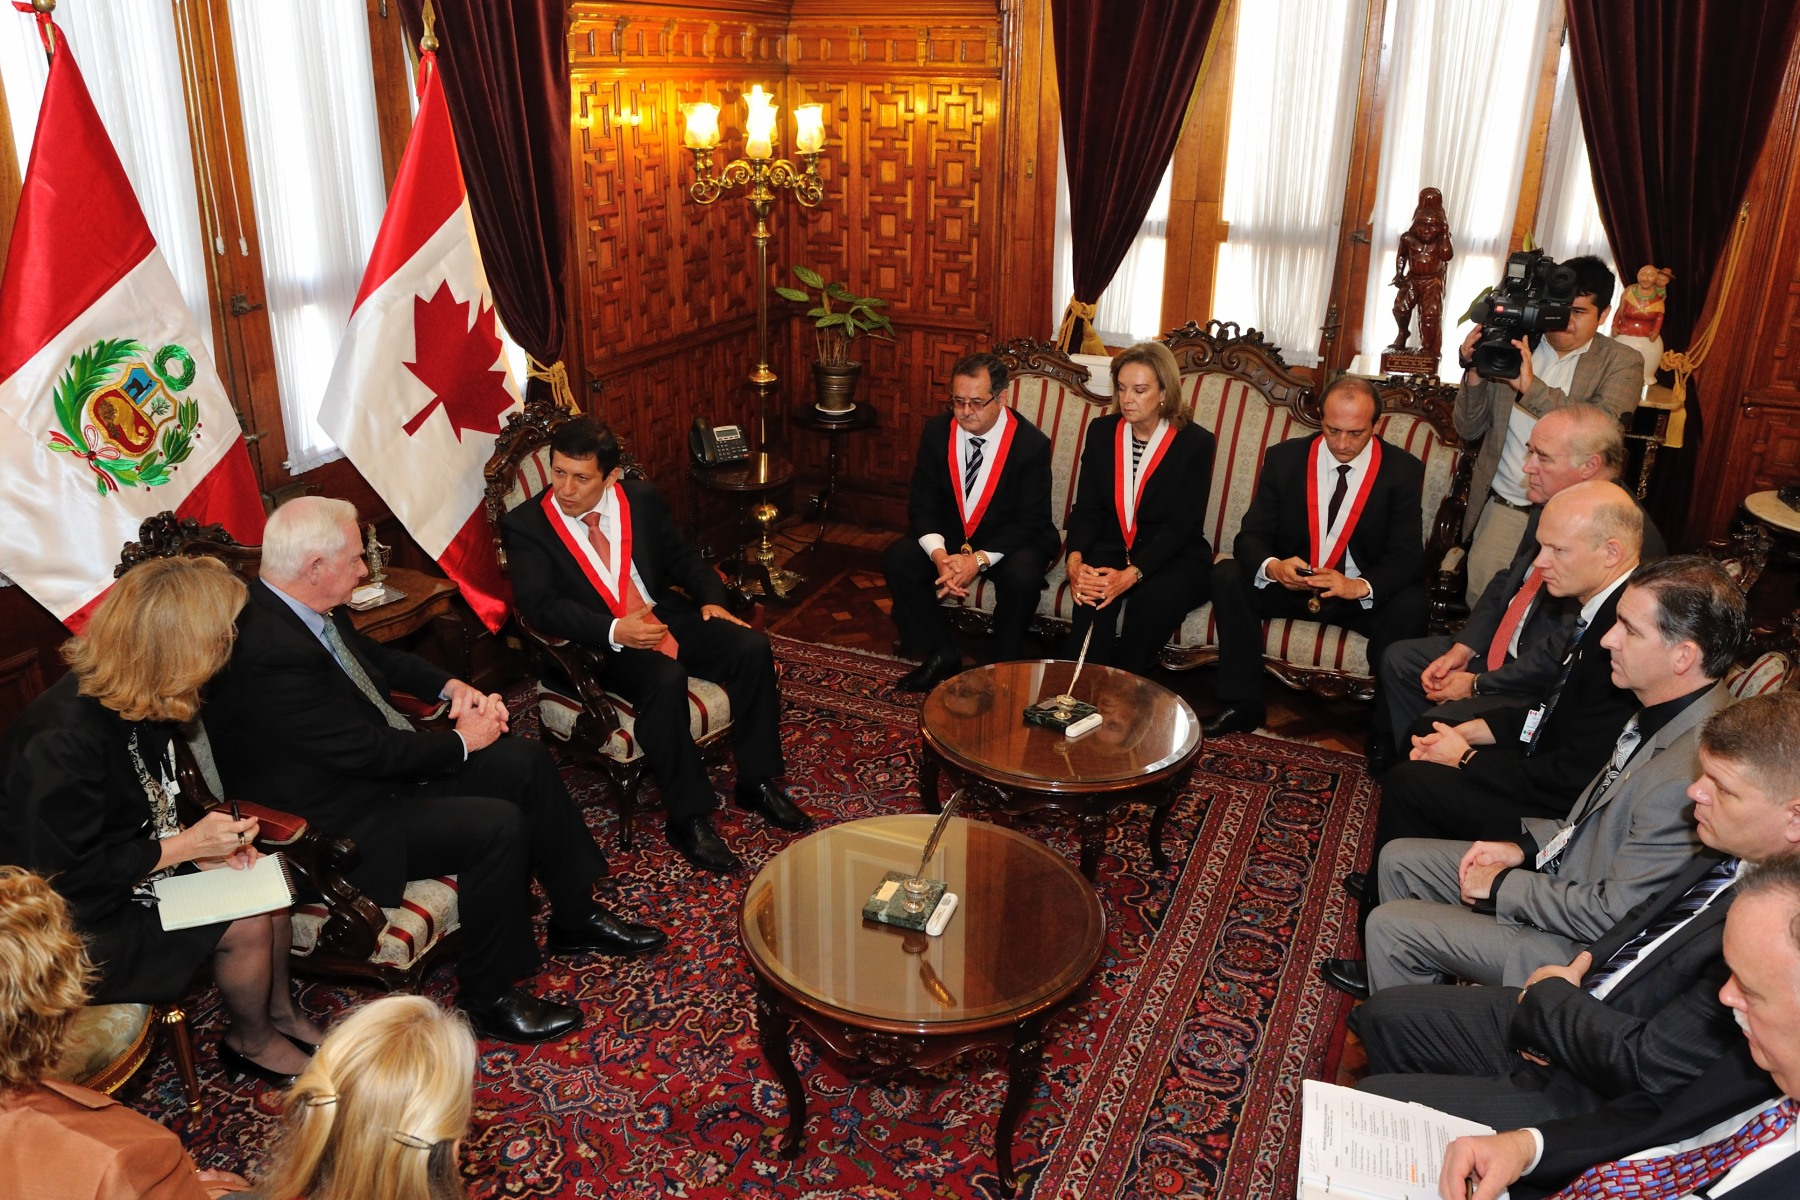 During the meeting, the Governor General discussed the strong relations between our countries as reflected in our increasing collaboration on initiatives related to education, business and innovation.